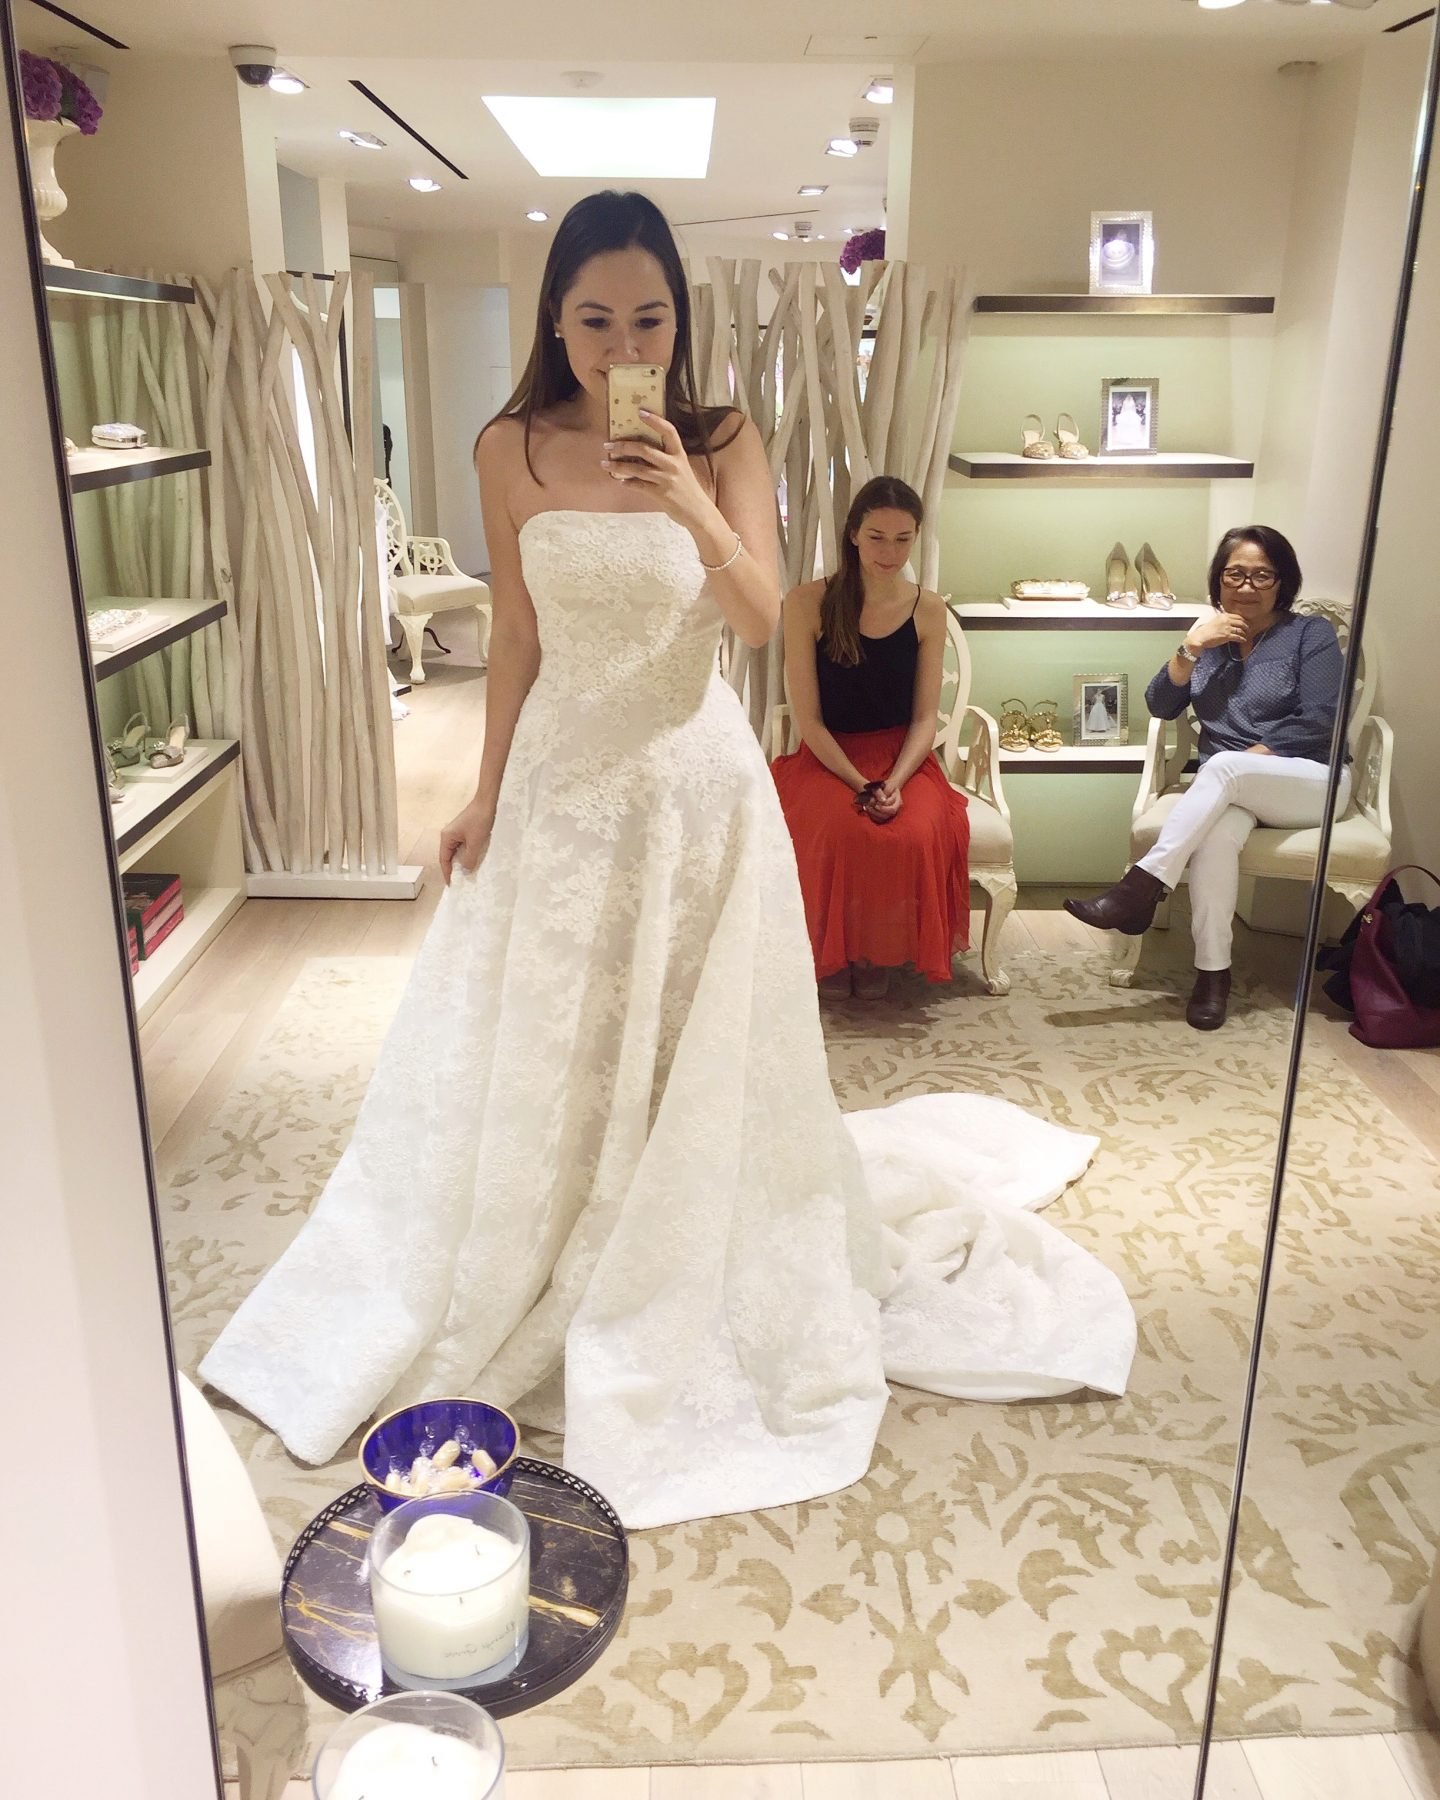 Wedding Dress Shopping Chronicles - Part 2! - Chase Amie